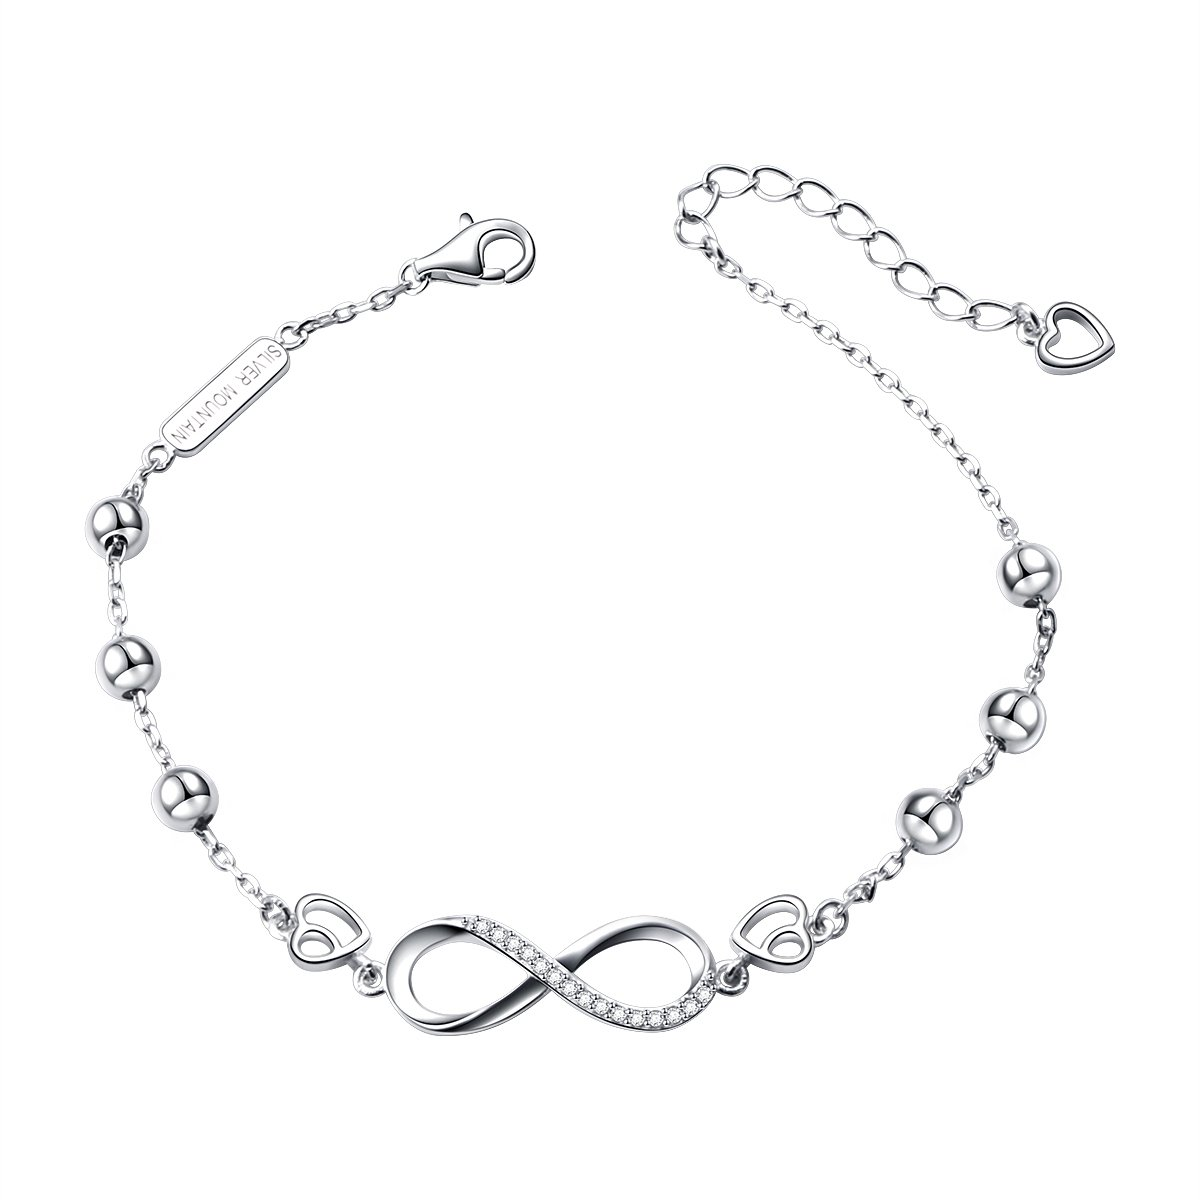 SILVER MOUNTAIN S925 Sterling Silver Infinity with Beads Adjustable Bracelet